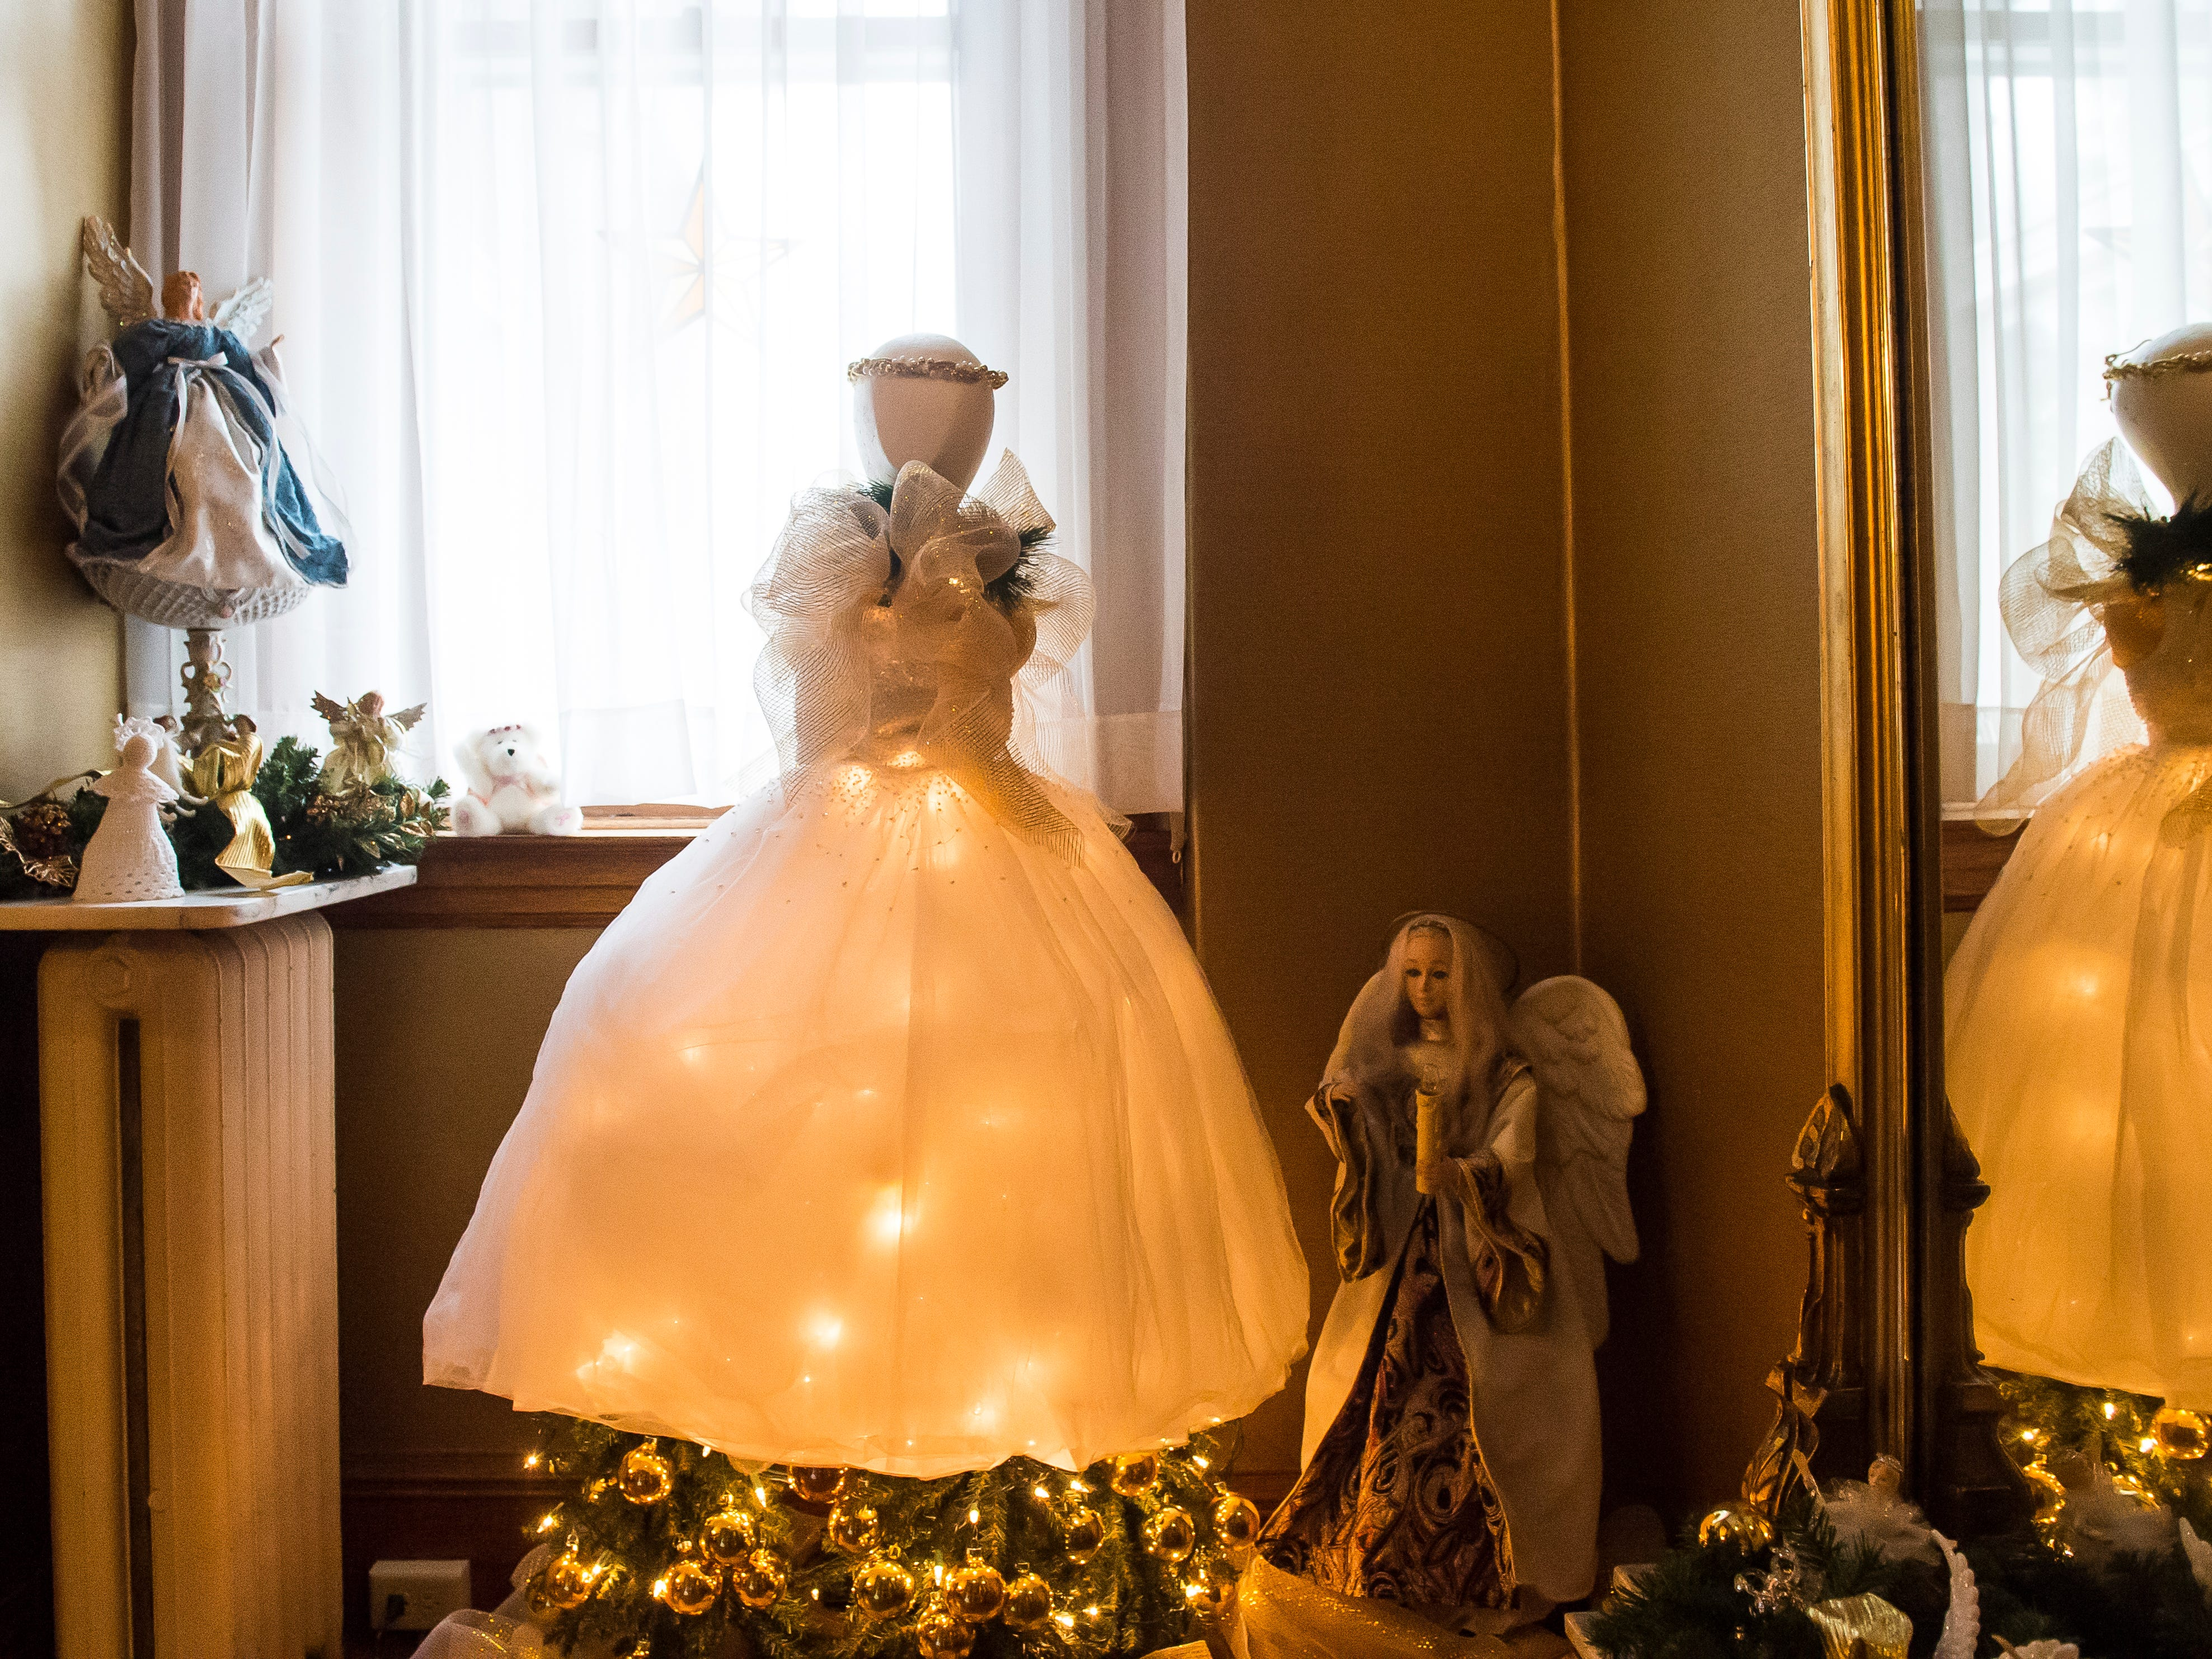 Angel-themed decorations are displayed in the butler's pantry in the Warehime-Myers Mansion in Hanover. These decorations were arranged by Hanover Area Historical Society board member Nancy Markle.